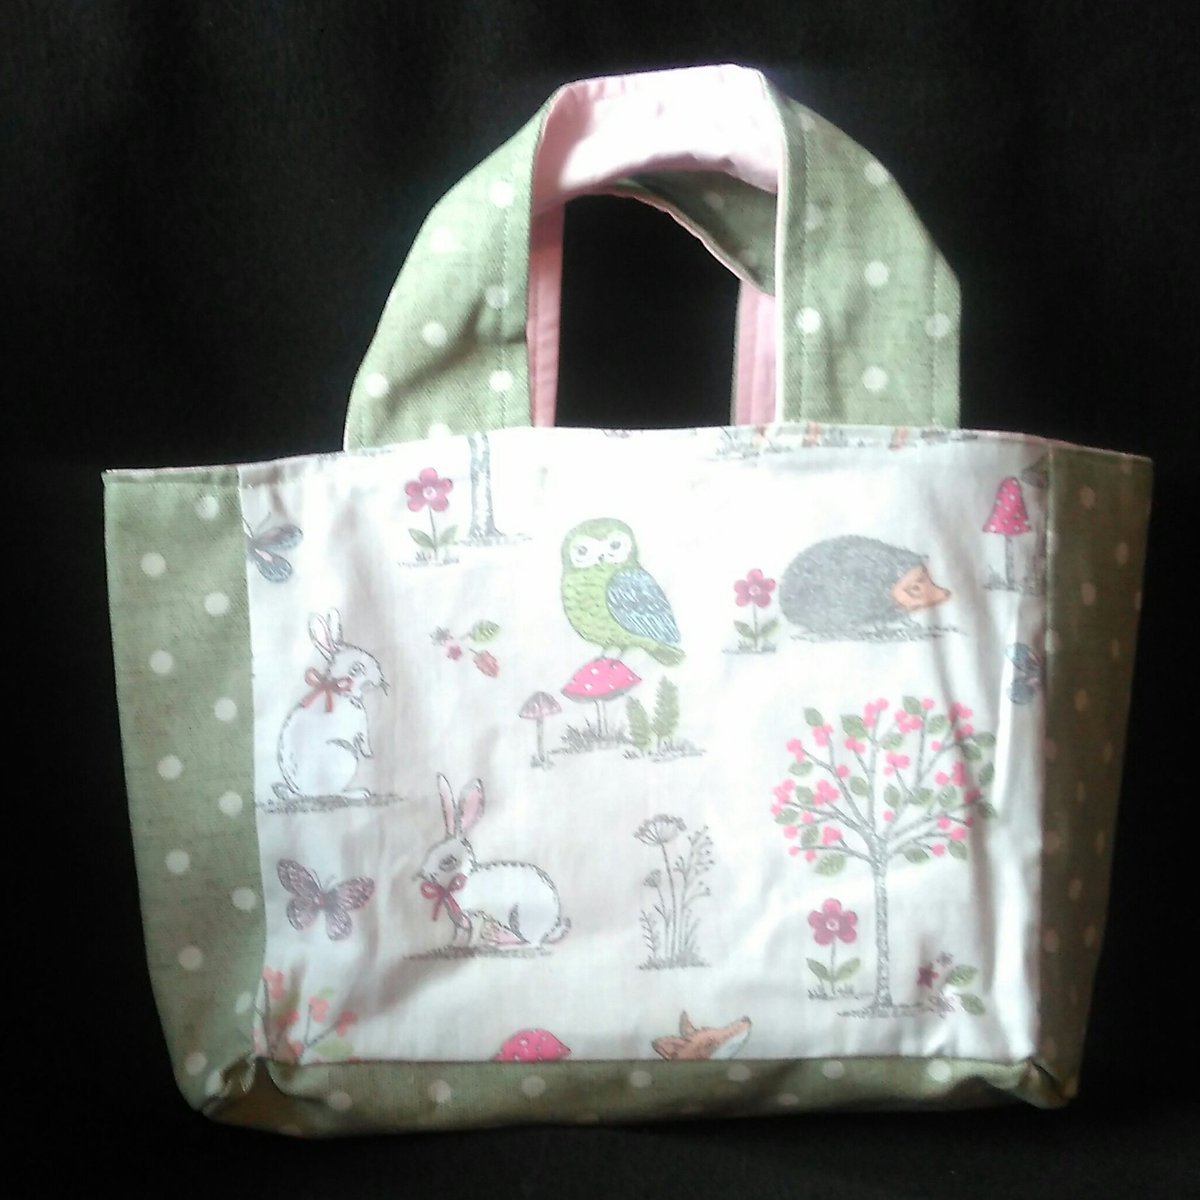 Cute little bag.Handmade by us here at Amelia&#39;s Grotto #cute #bag #woodland #animals #green #spots #handmade #forsale #ameliasgrotto<br>http://pic.twitter.com/GLgbNAFDL2